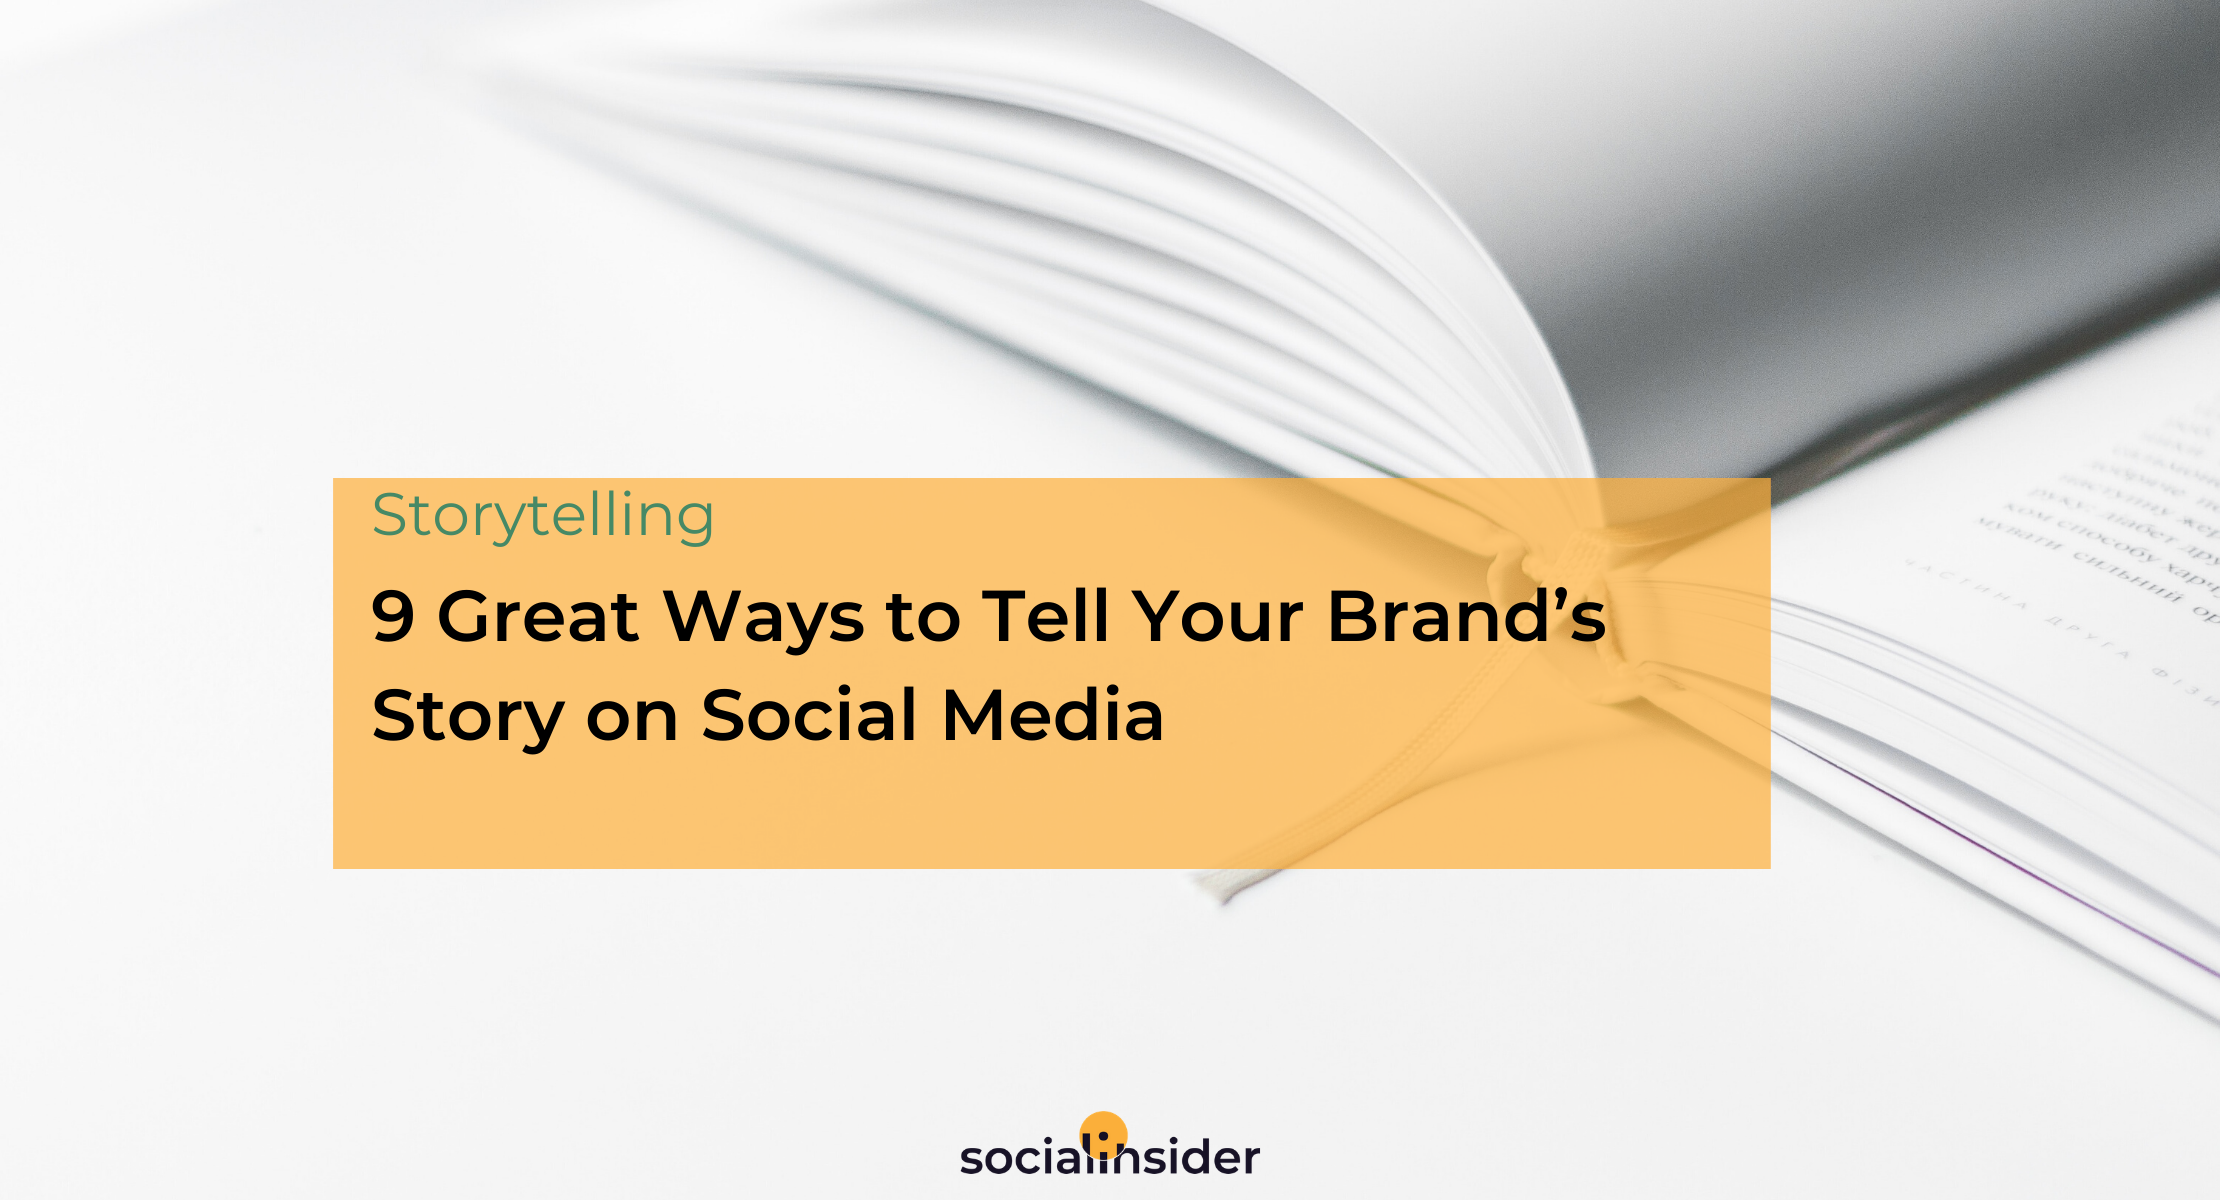 9-Great-Ways-to-Tell-Your-Brand-s-Story-on-Social-Media_body